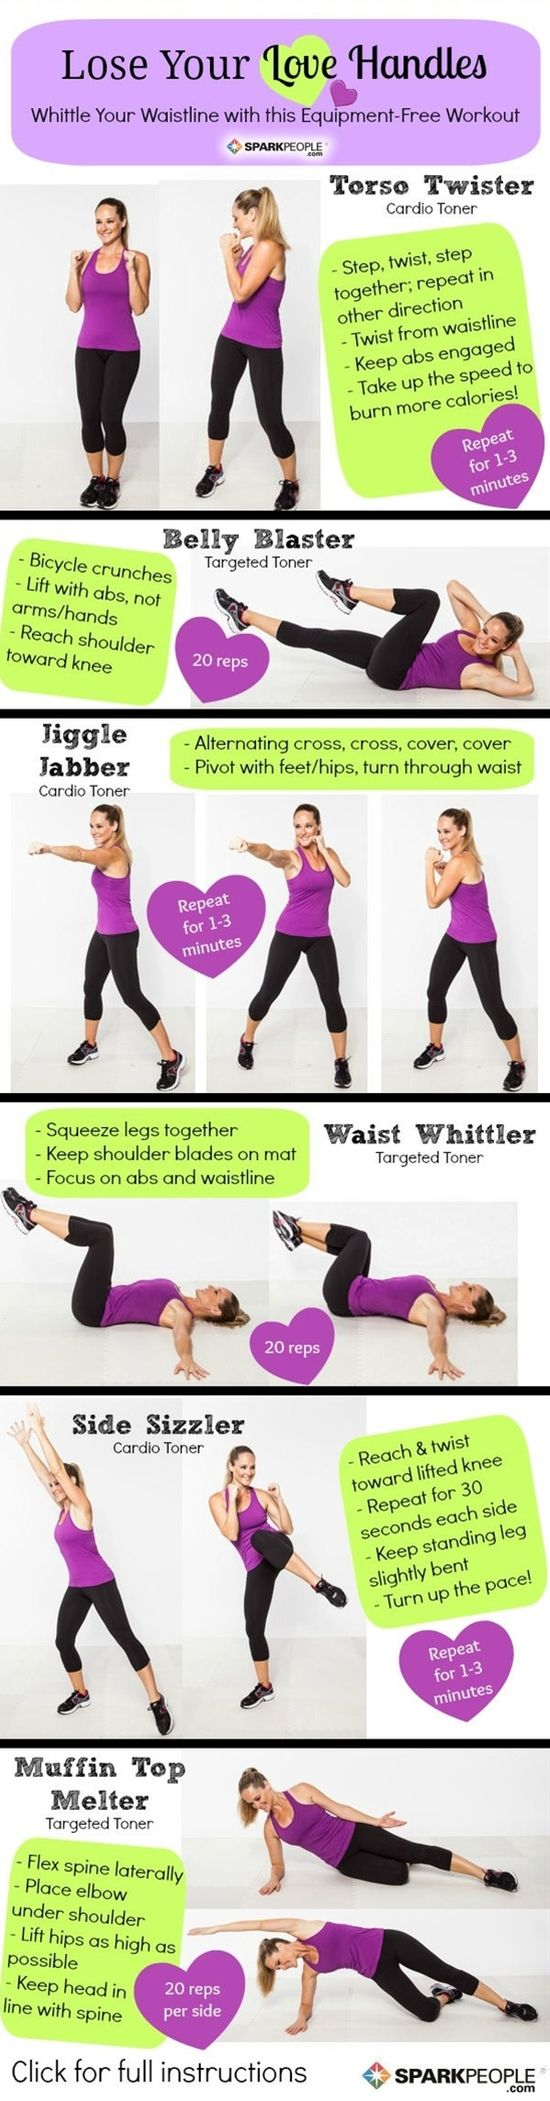 The uLose Your Love Handlesu Workout  Pinterest pin Workout and